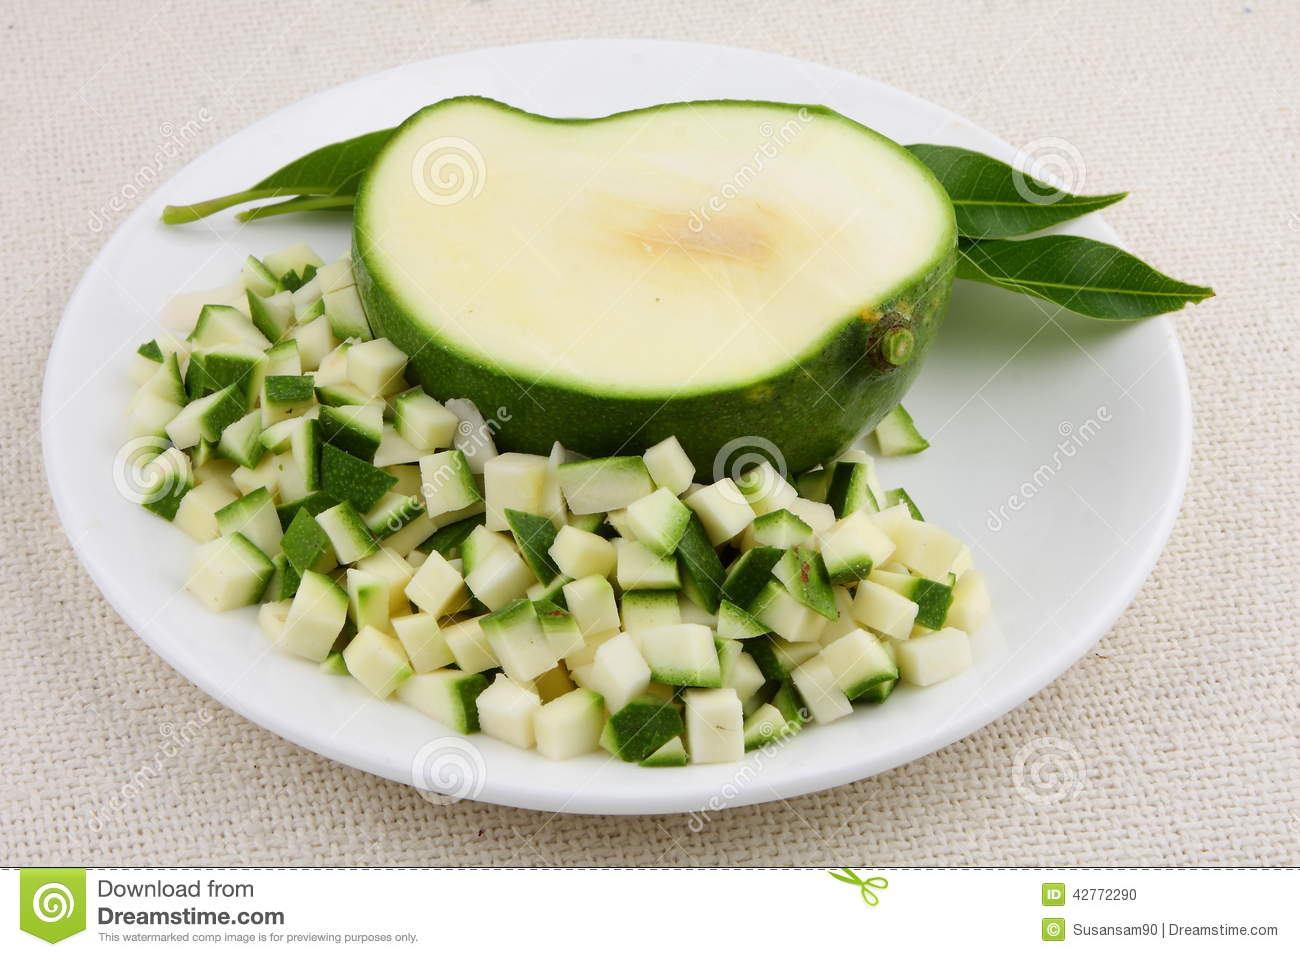 Green Mango Small Slices Stock Photo - Image: 42772290